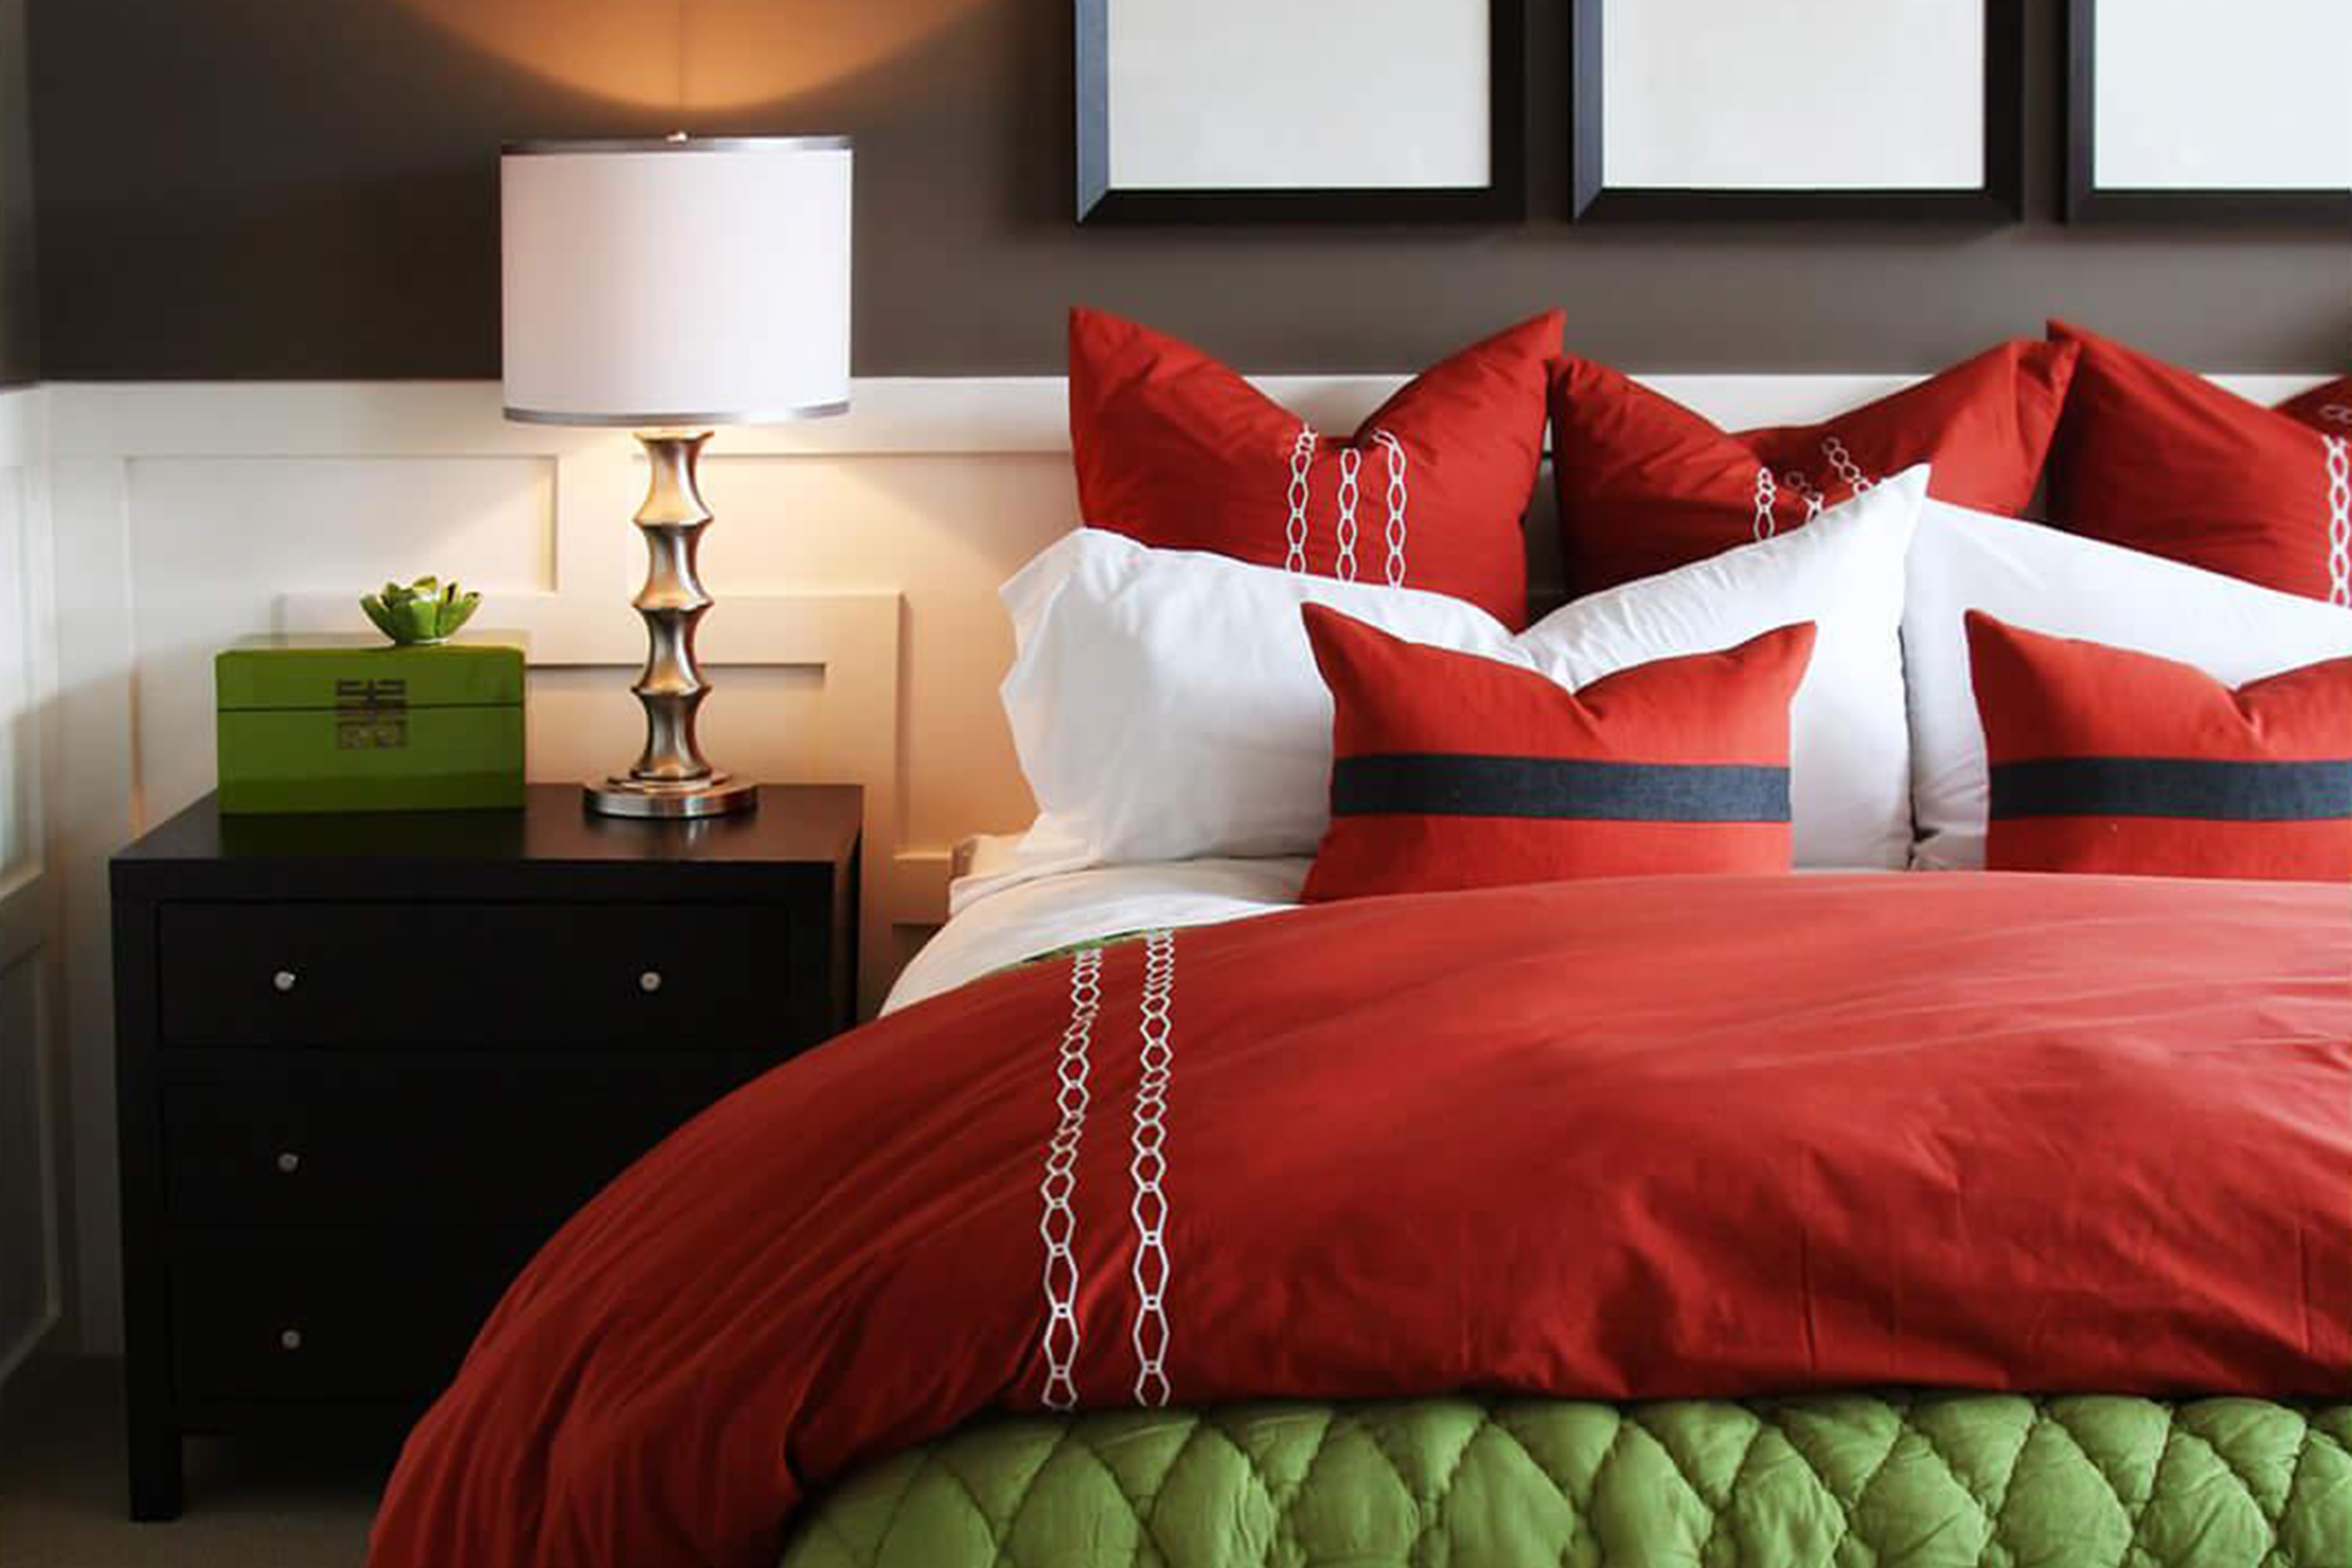 a large red bed in a hotel room